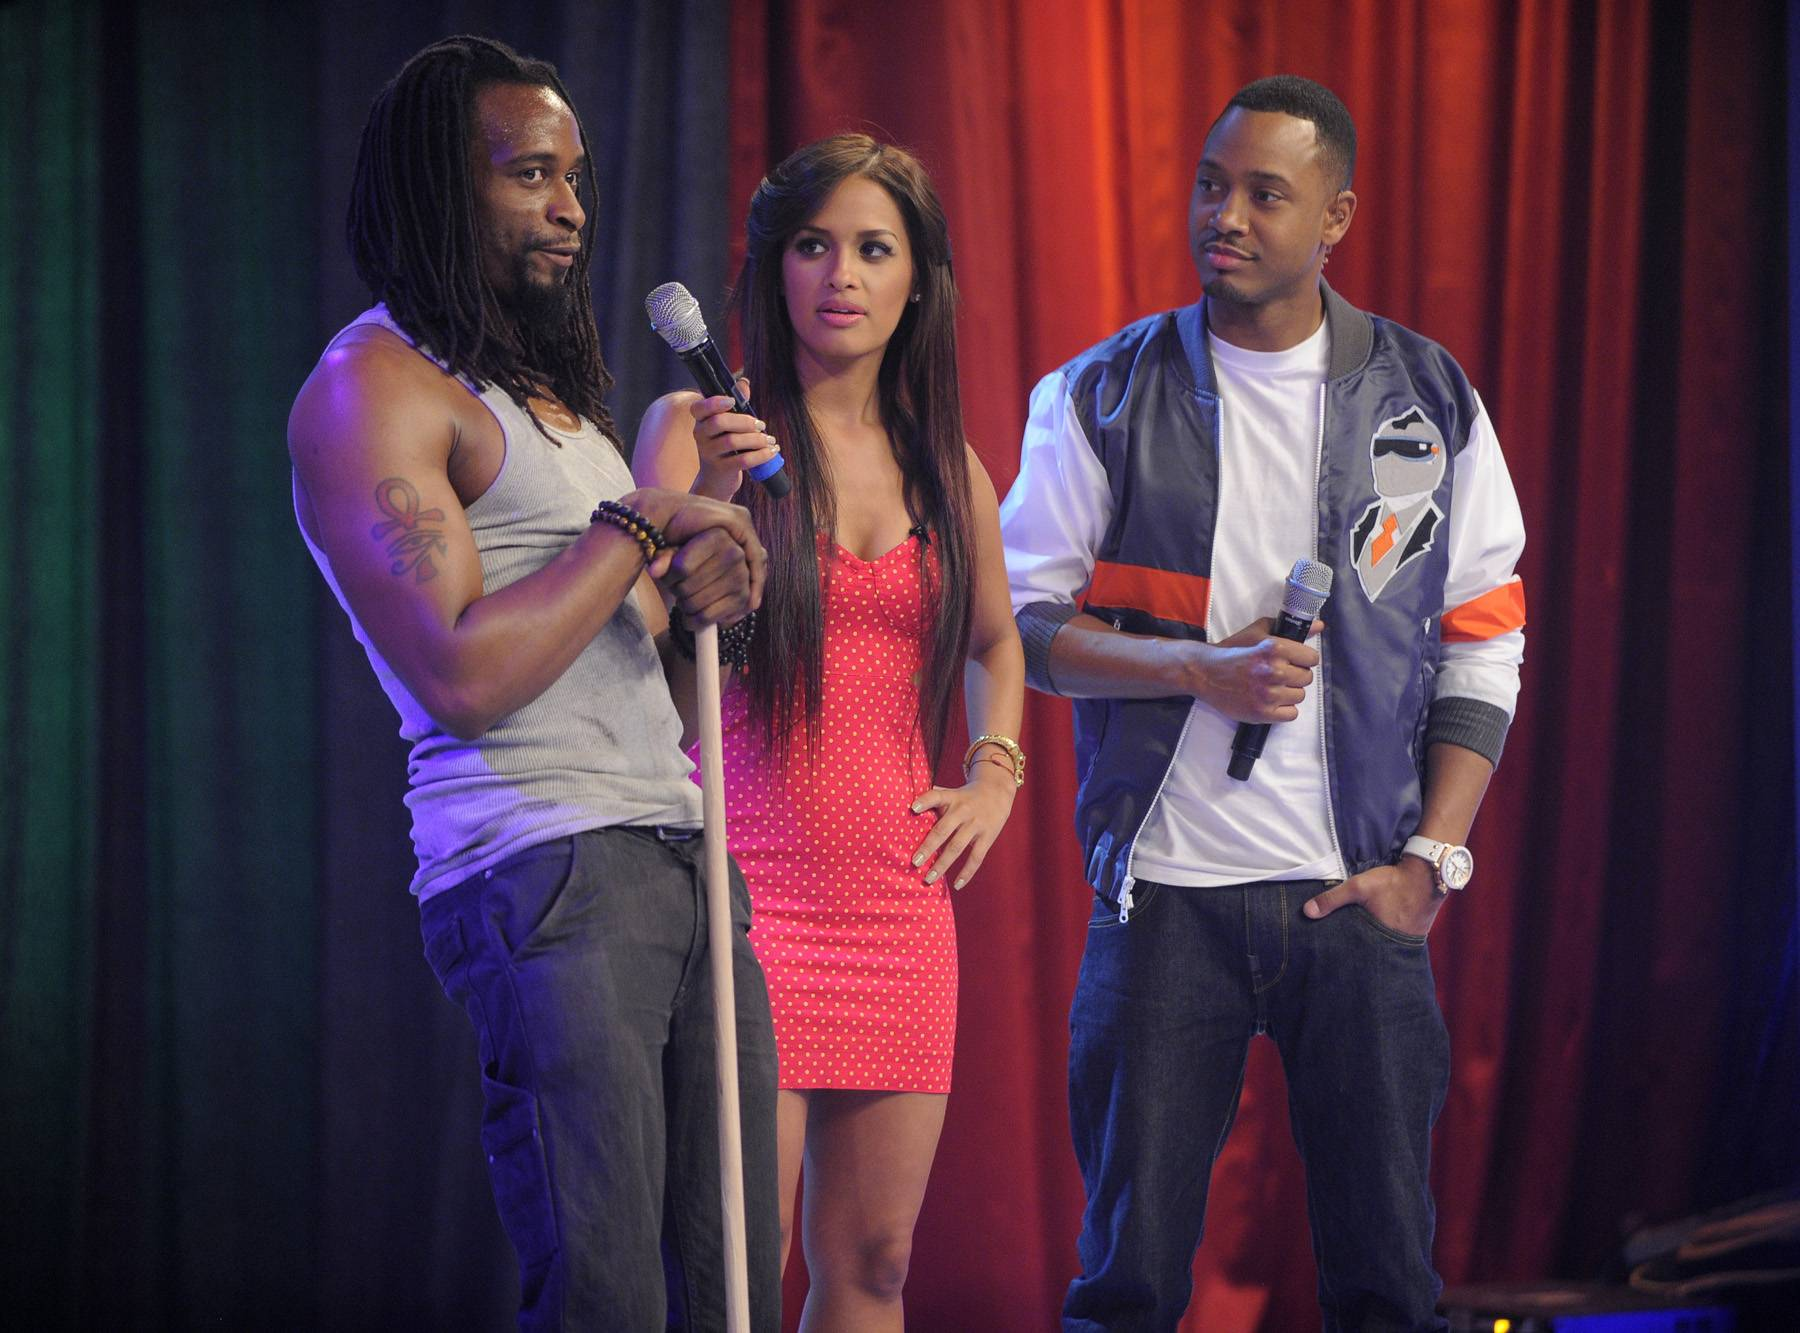 """Stomping Through - Cast of """"STOMP"""" with Rocsi Diaz and Terrence J at 106 & Park, May 3, 2012. (Photo: John Ricard / BET)"""